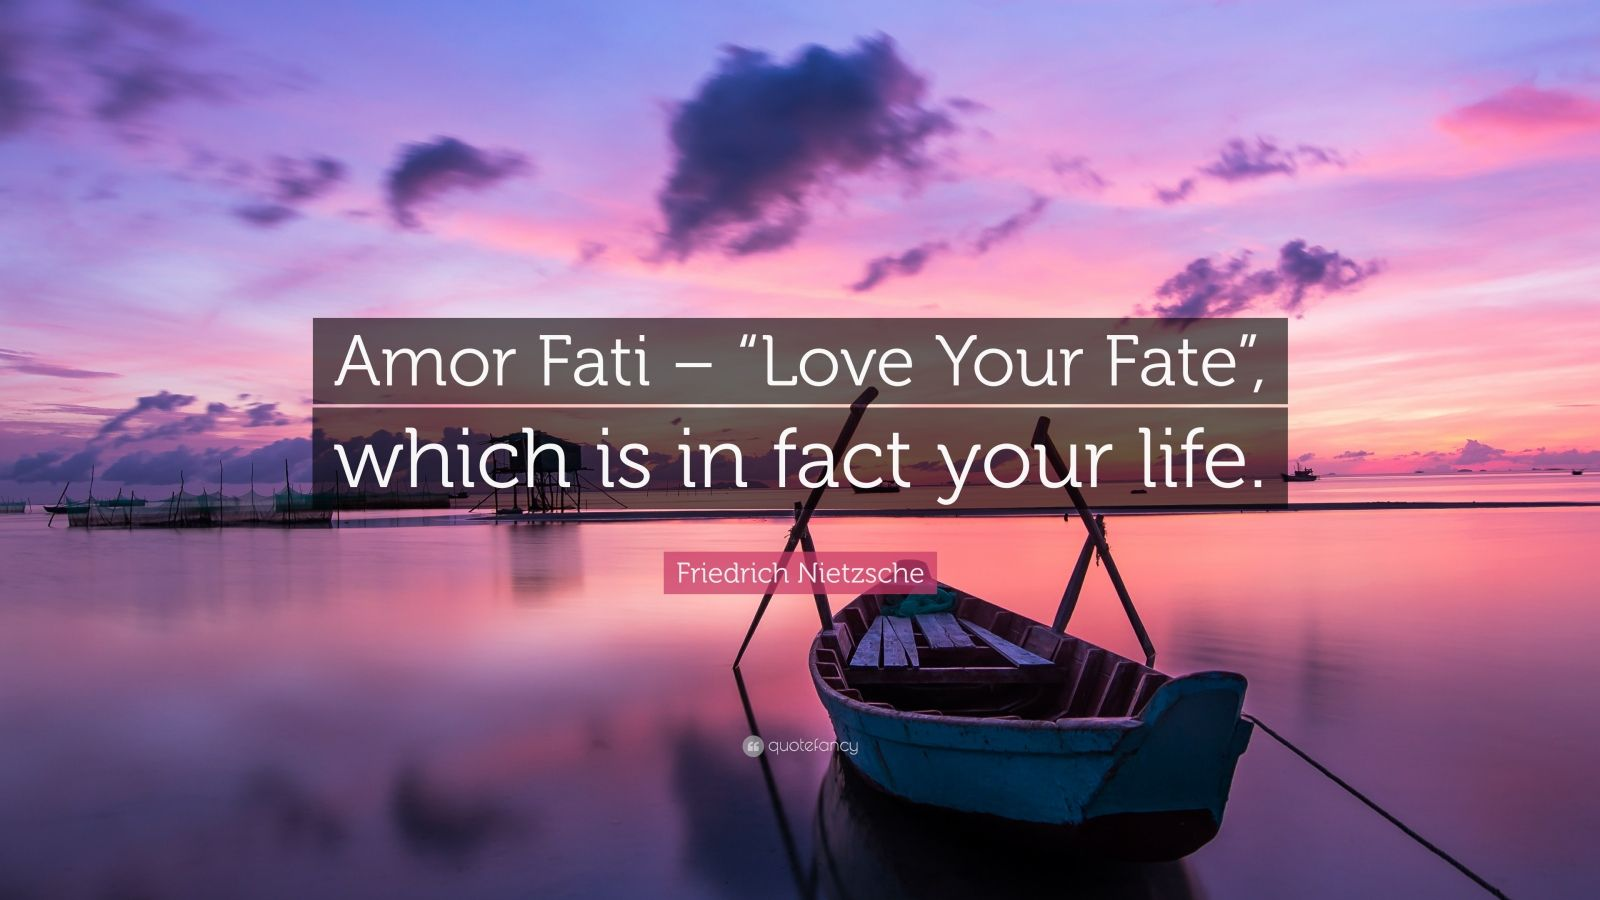 Beautiful Inspirational Quotes Wallpapers Friedrich Nietzsche Quote Amor Fati Love Your Fate